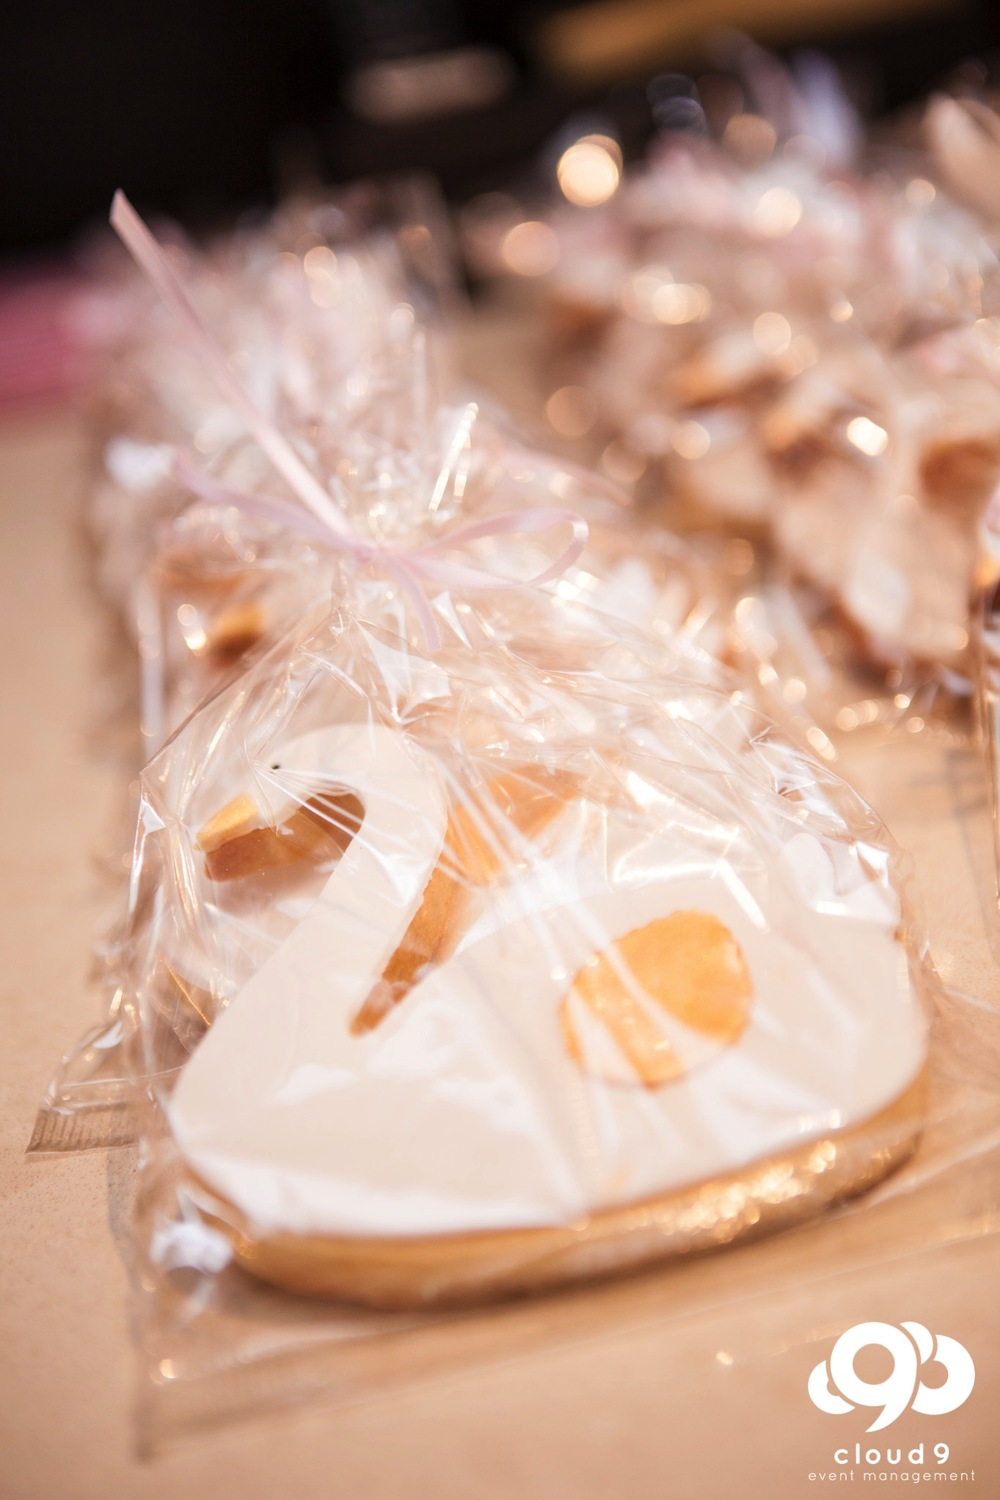 Custom swan shaped cookies for guests to take home